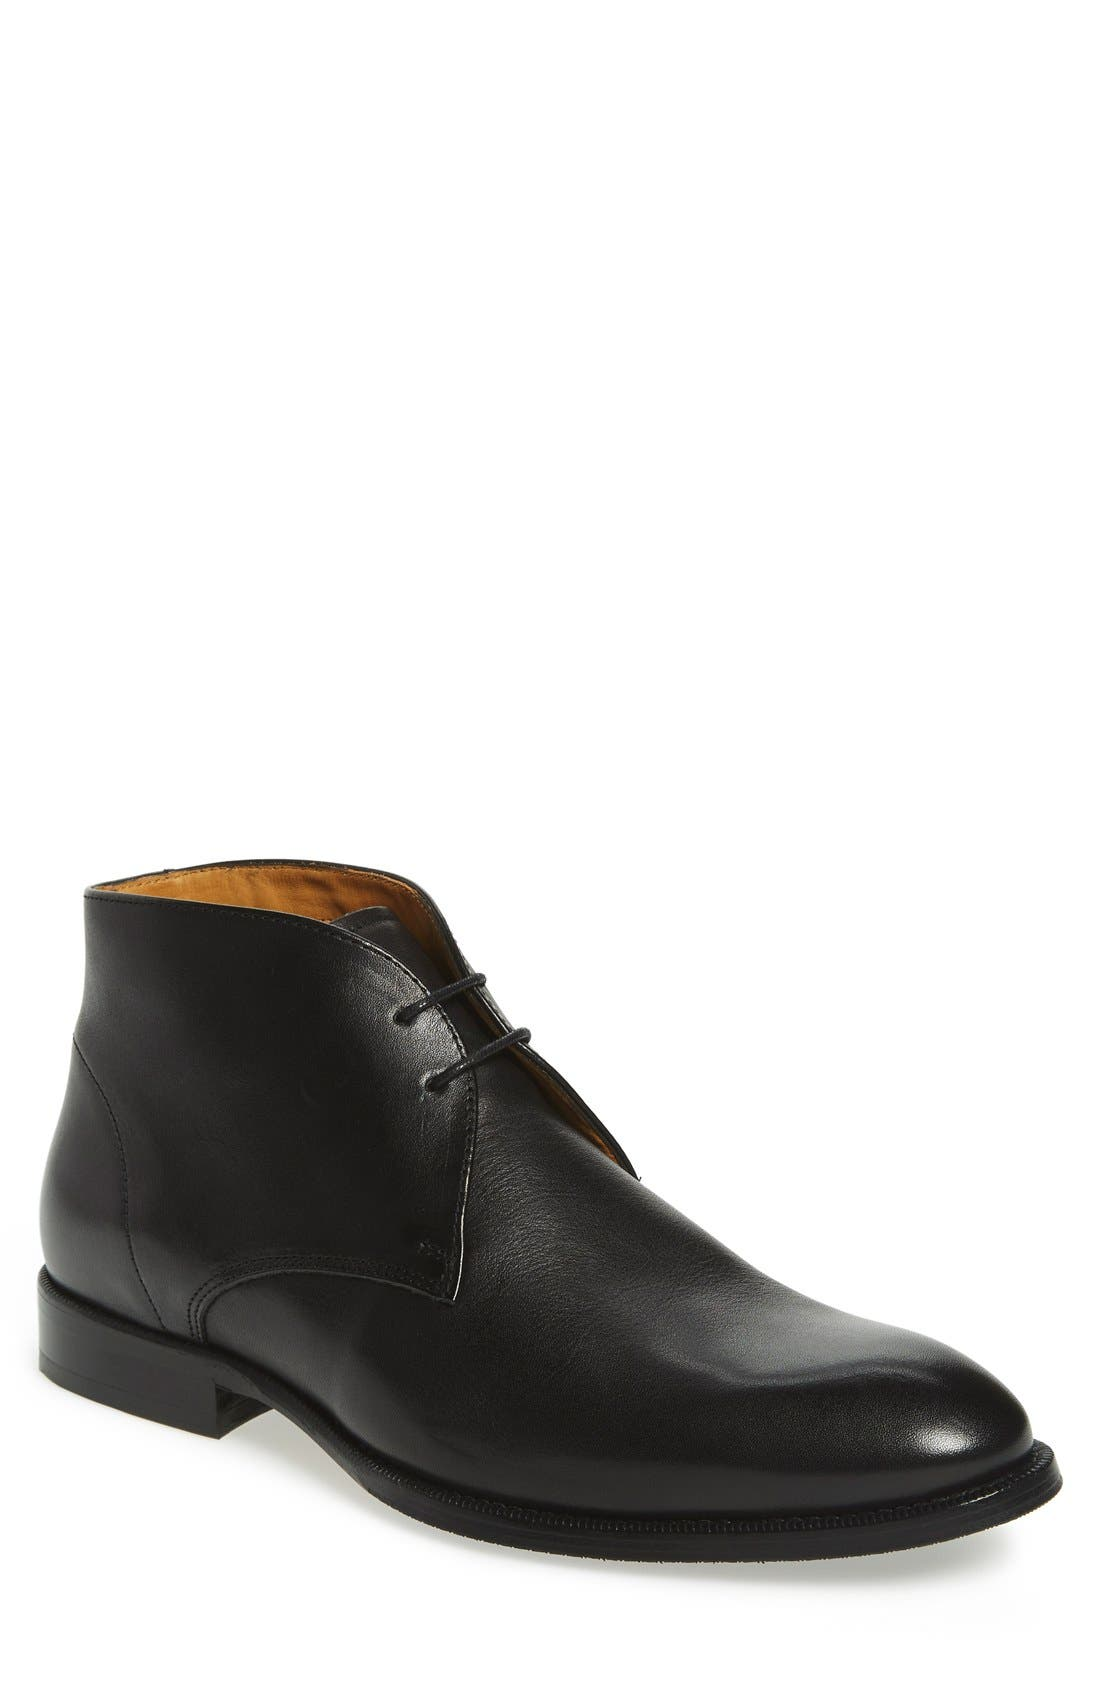 'Branx' Chukka Boot,                         Main,                         color, 001